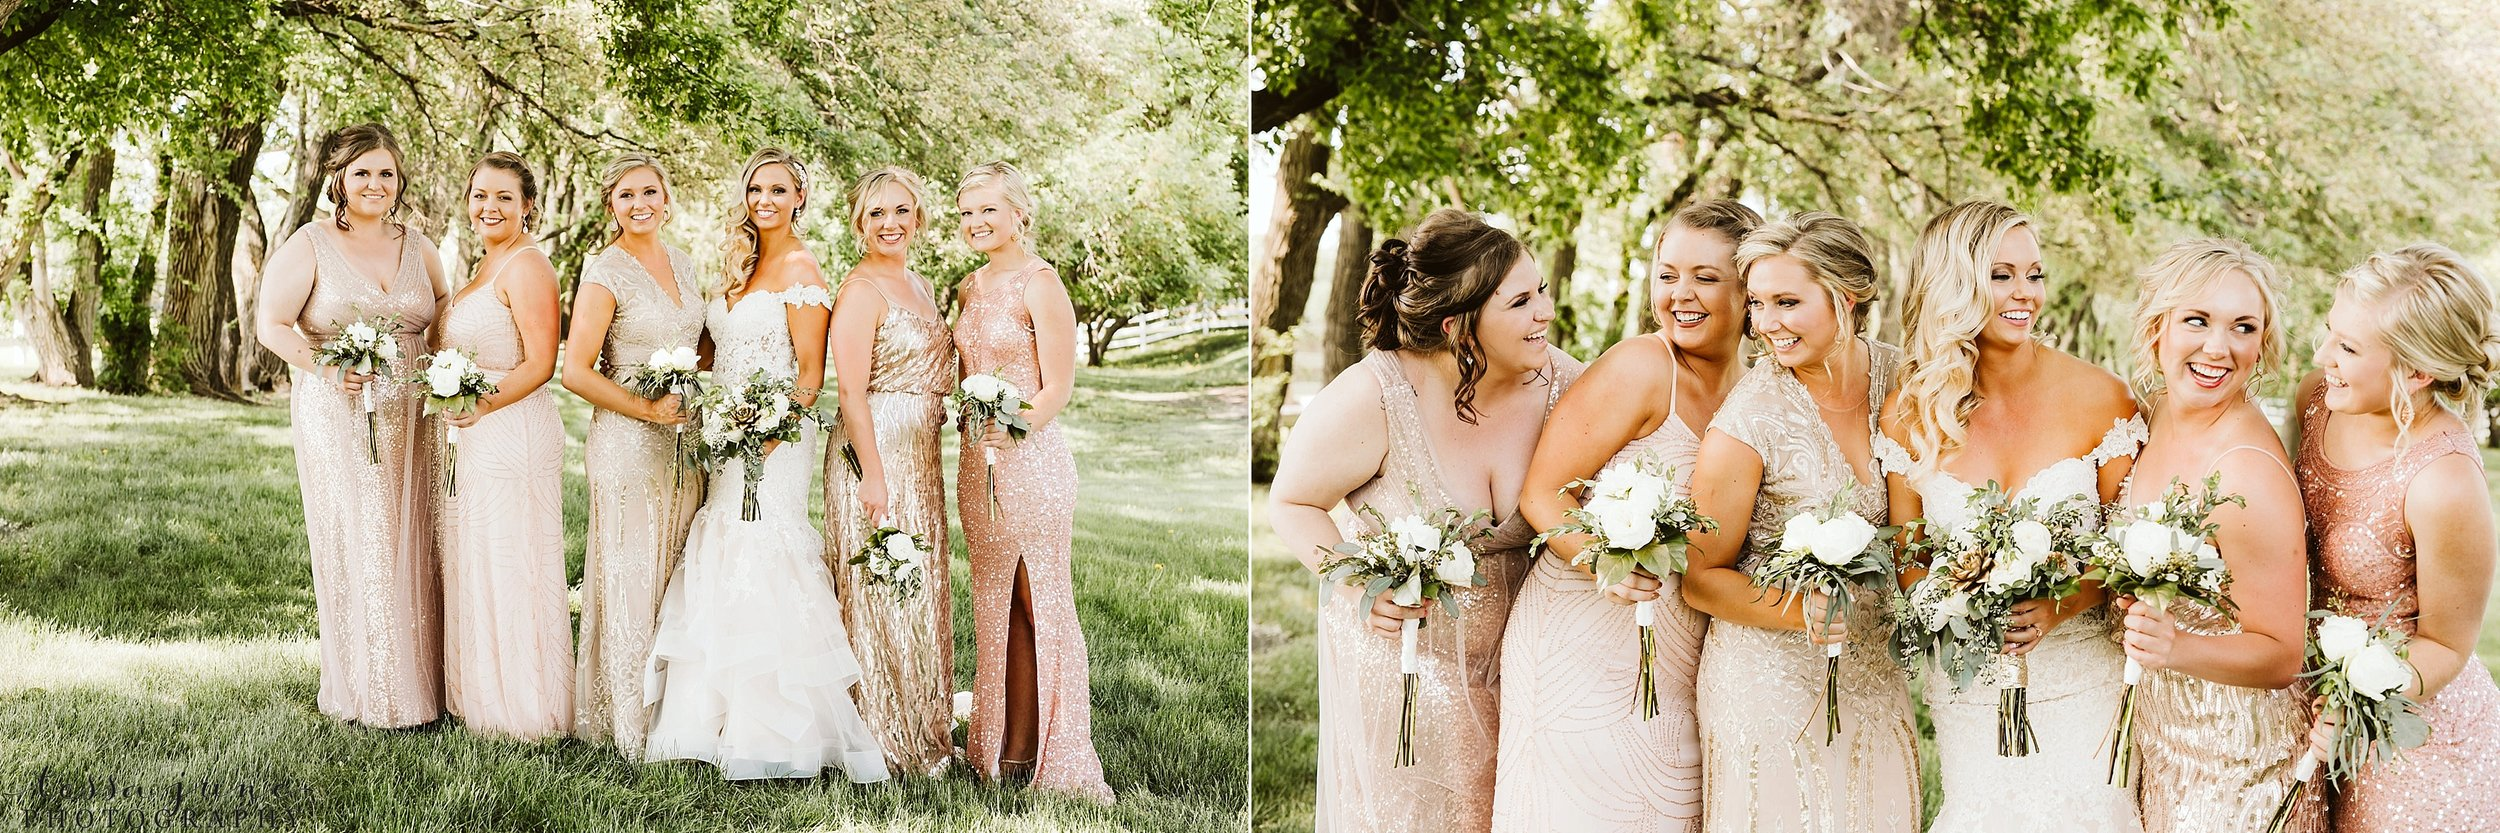 carlos-creek-winery-wedding-alexandria-minnesota-glam-elegant-floral-51.jpg